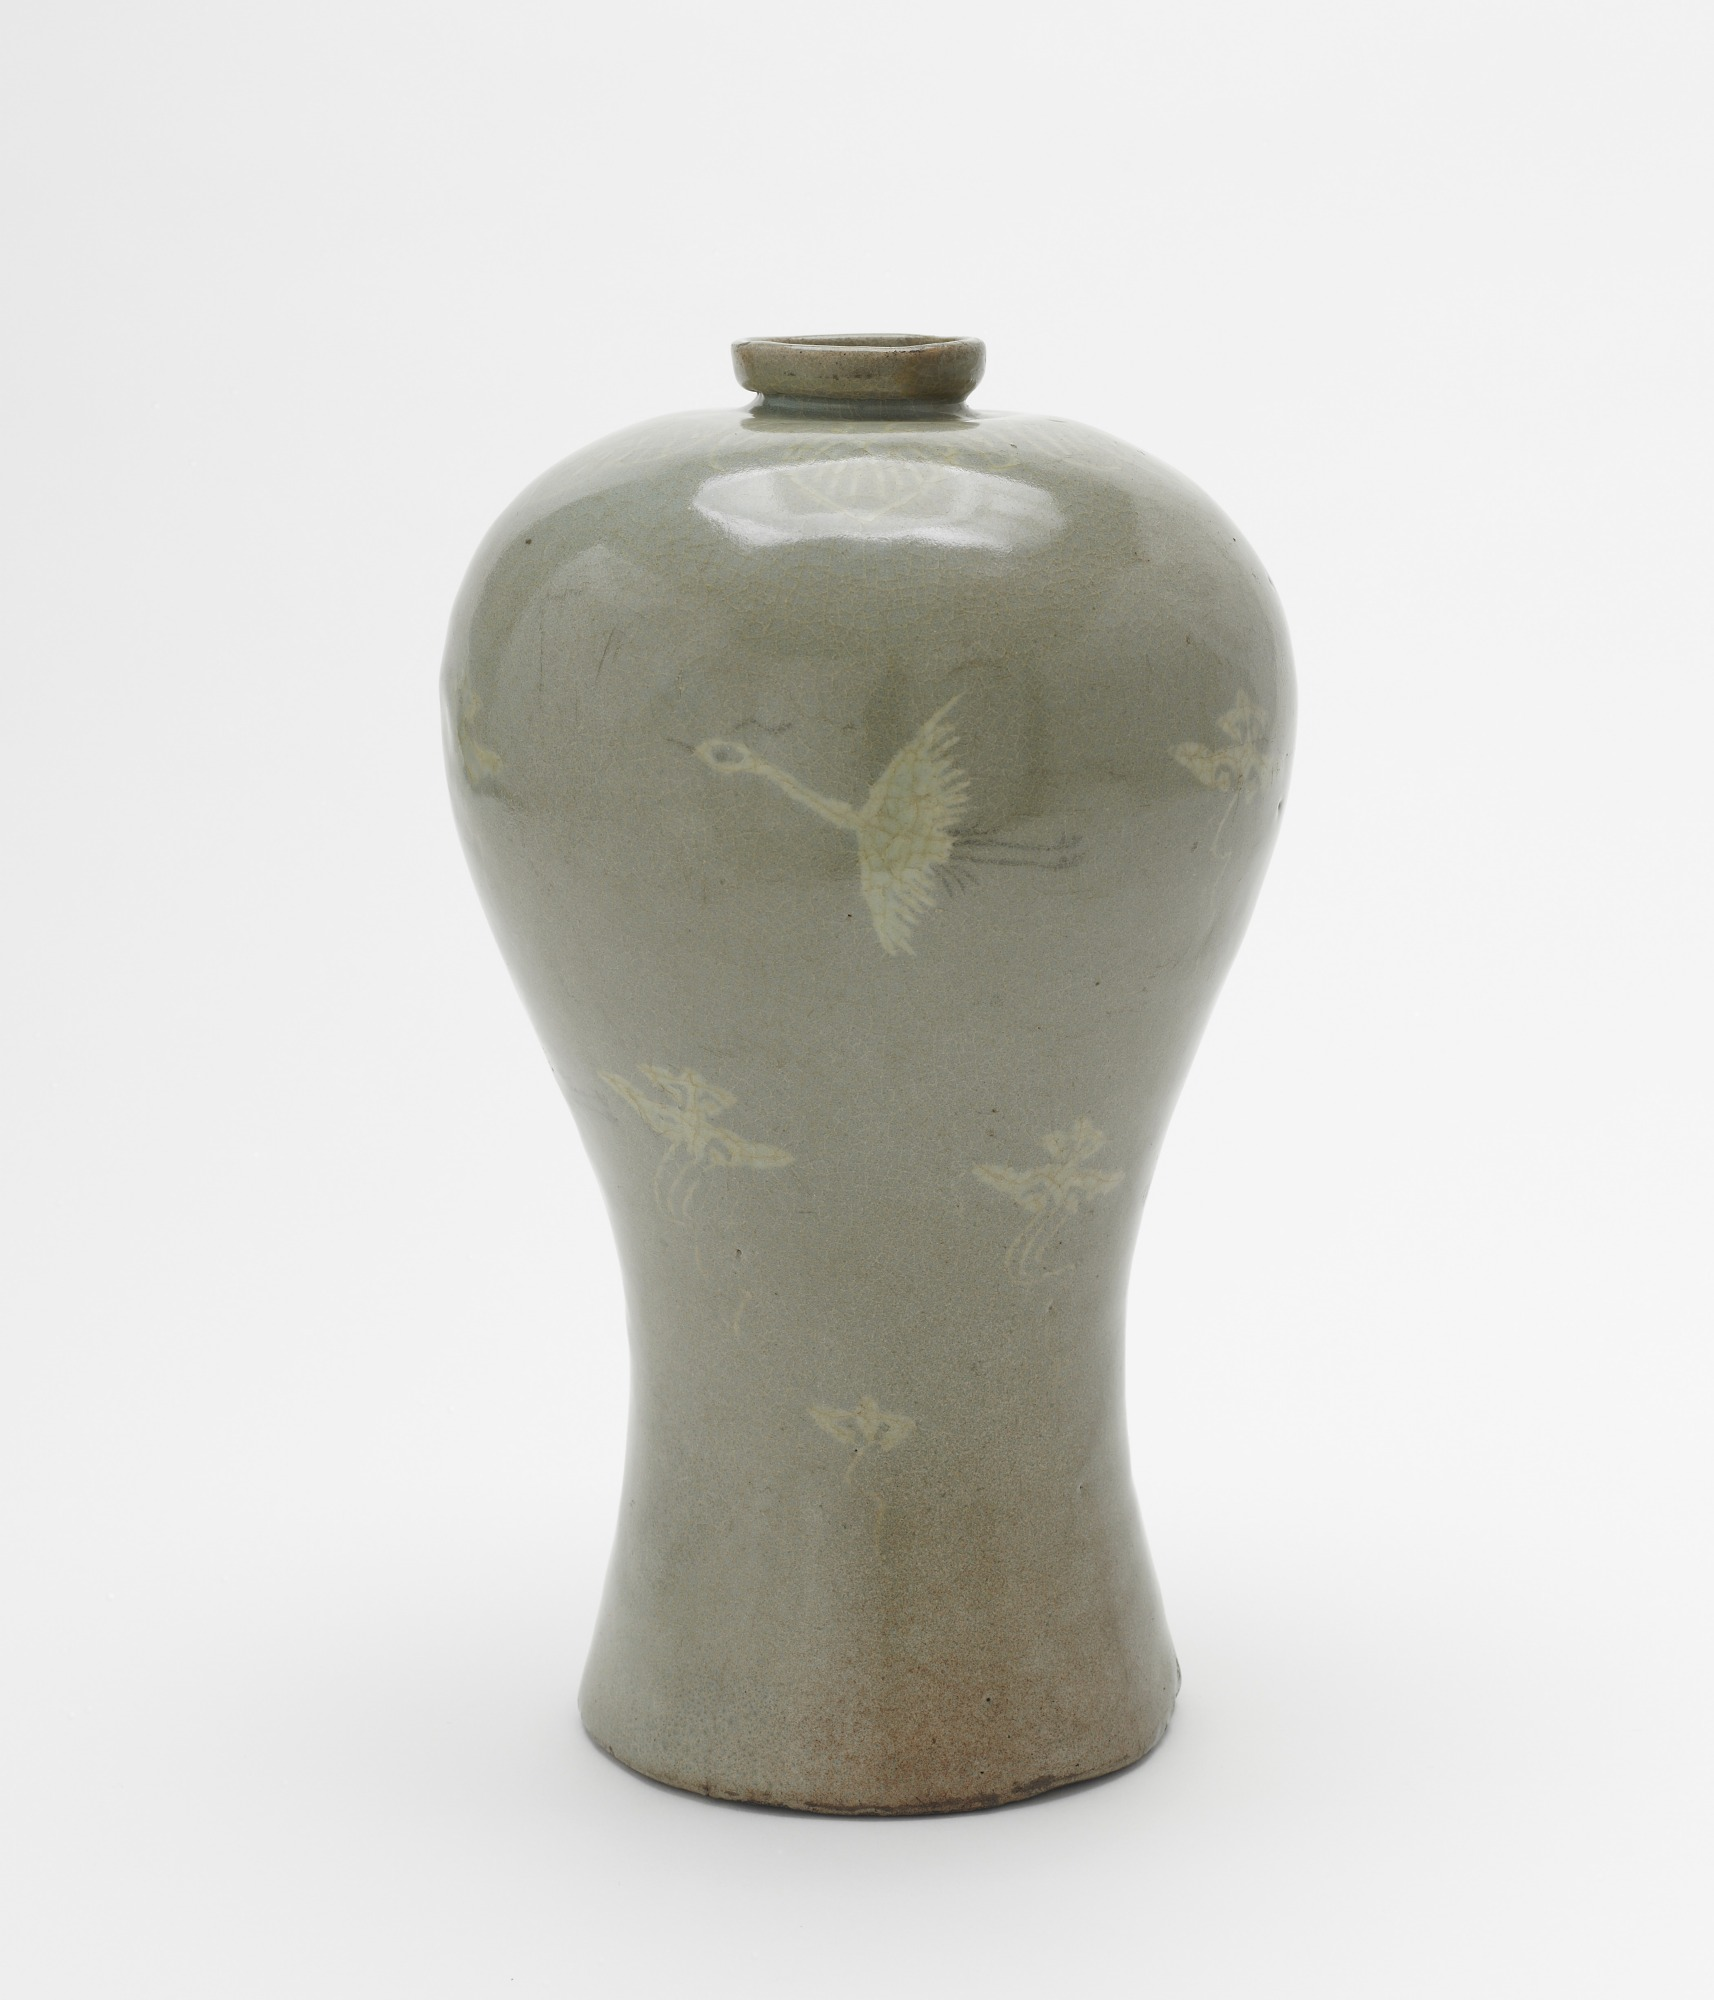 Bottle with inlaid decoration of flying cranes and clouds, profile